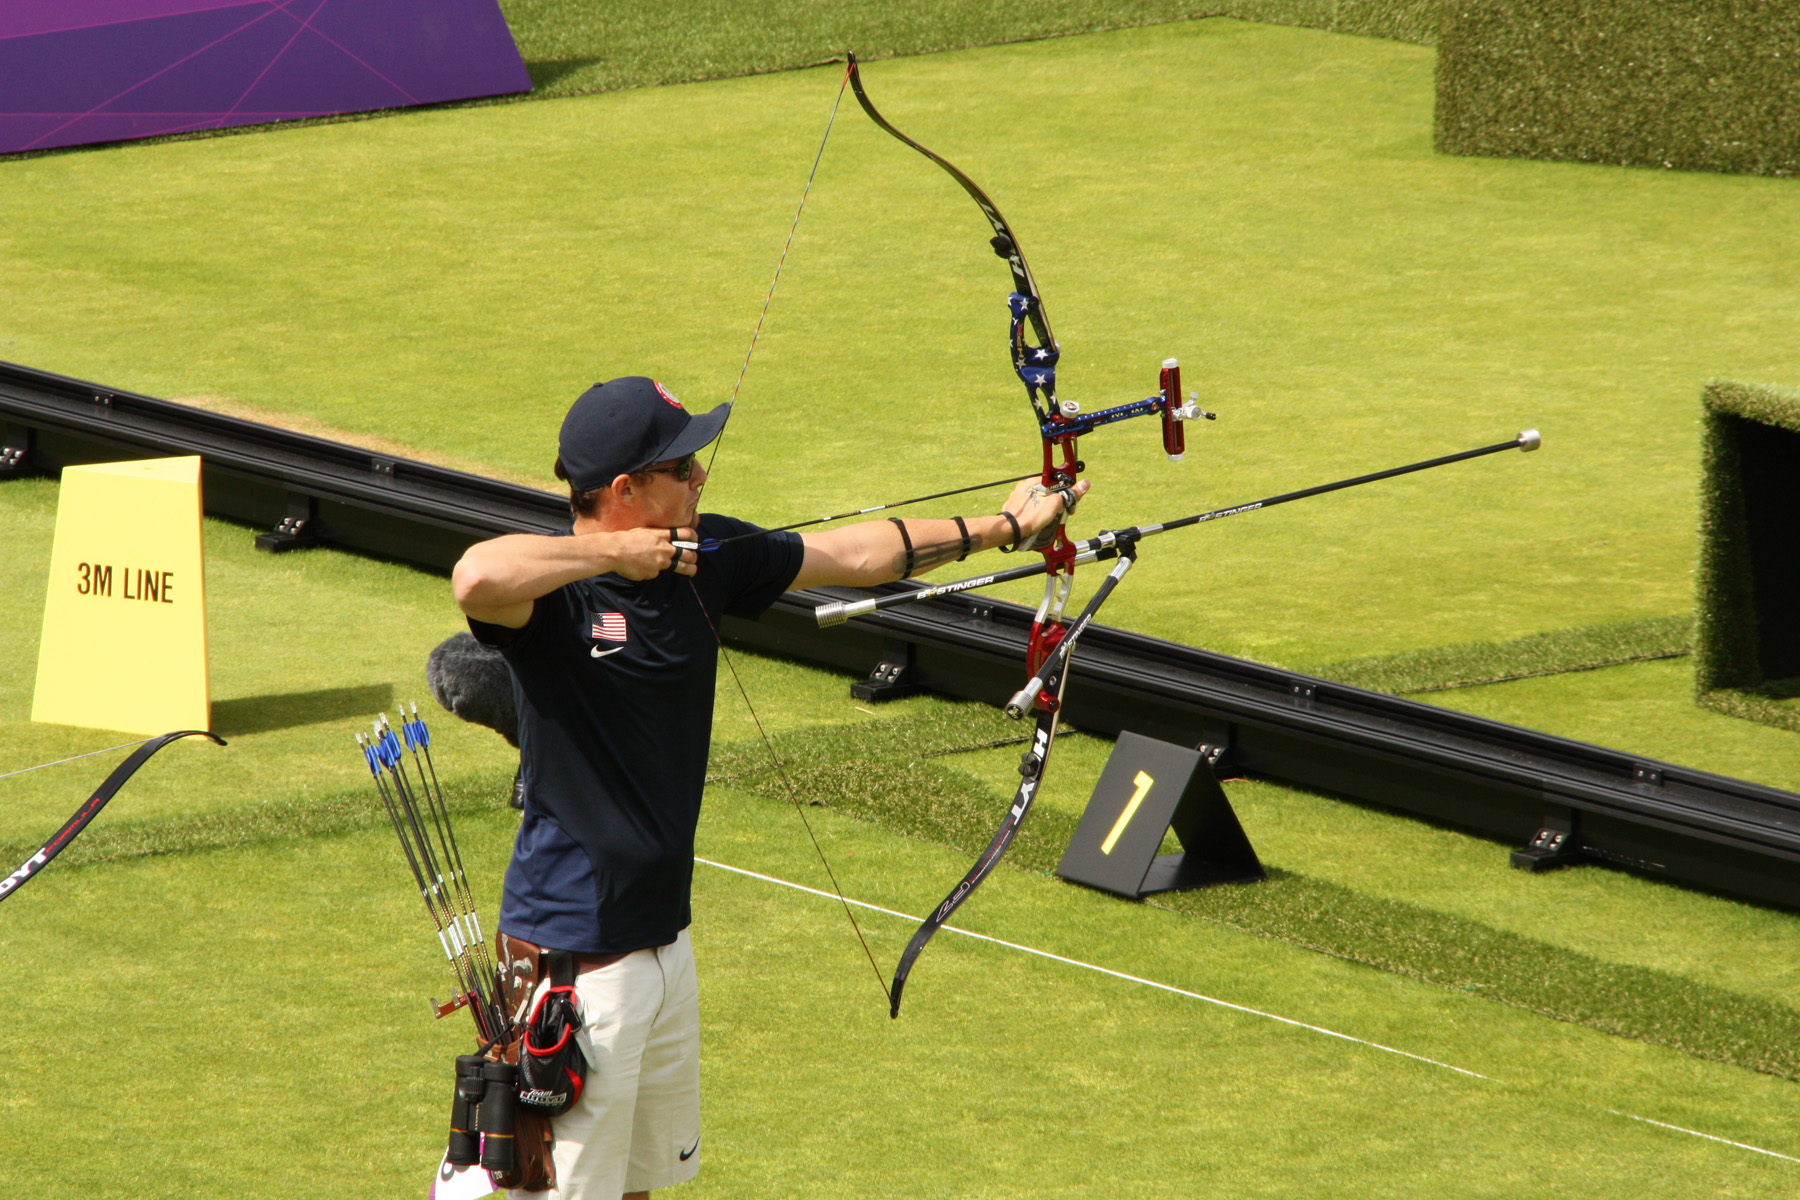 Olympic archery bows equipment